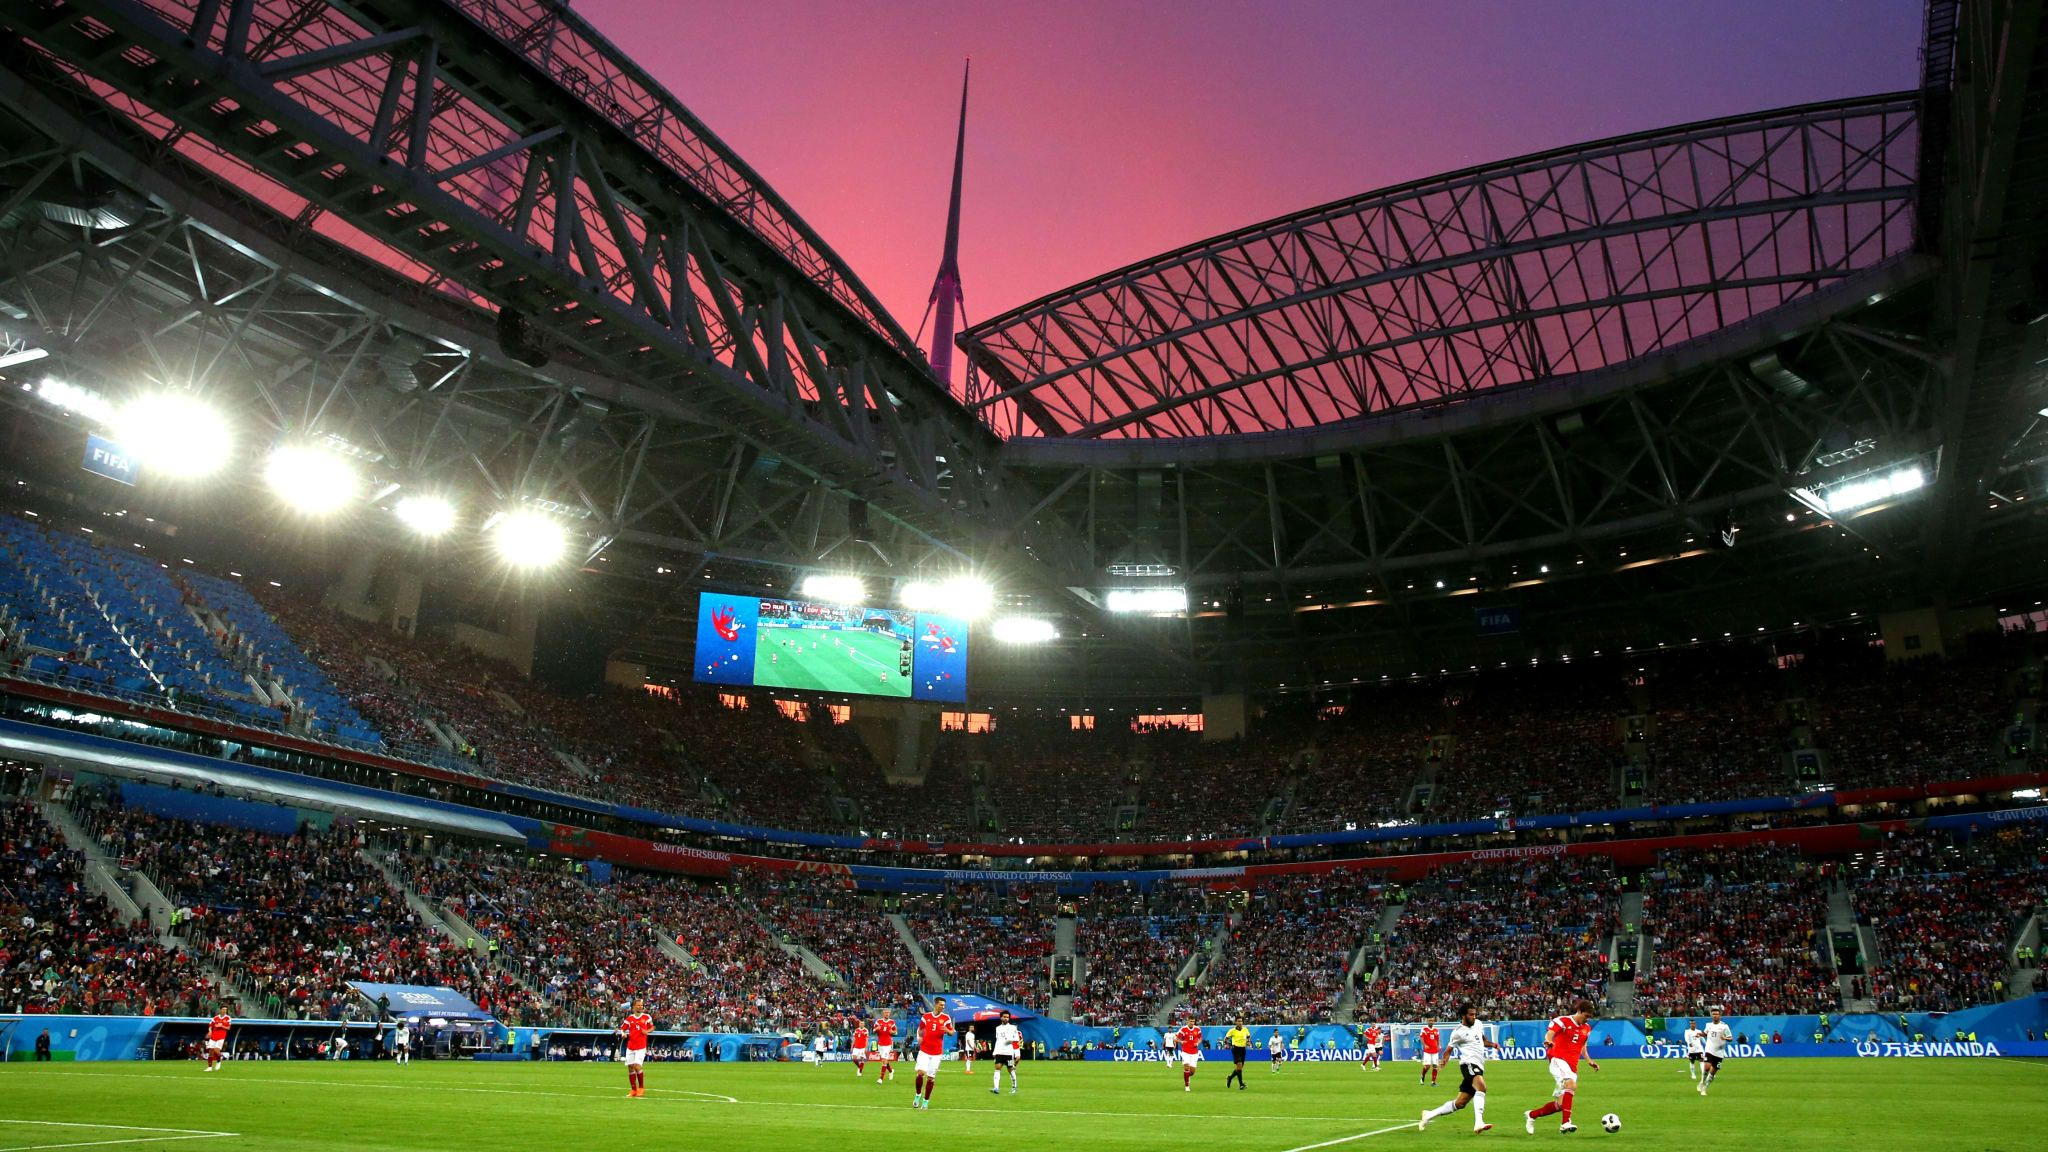 Fifa 2018 News Saint Petersburg S Story So Far As 12 Stadiums Has Slimmed Down To Its Final Two Even Though The Most Important Fifa World Cup New Saints Fifa